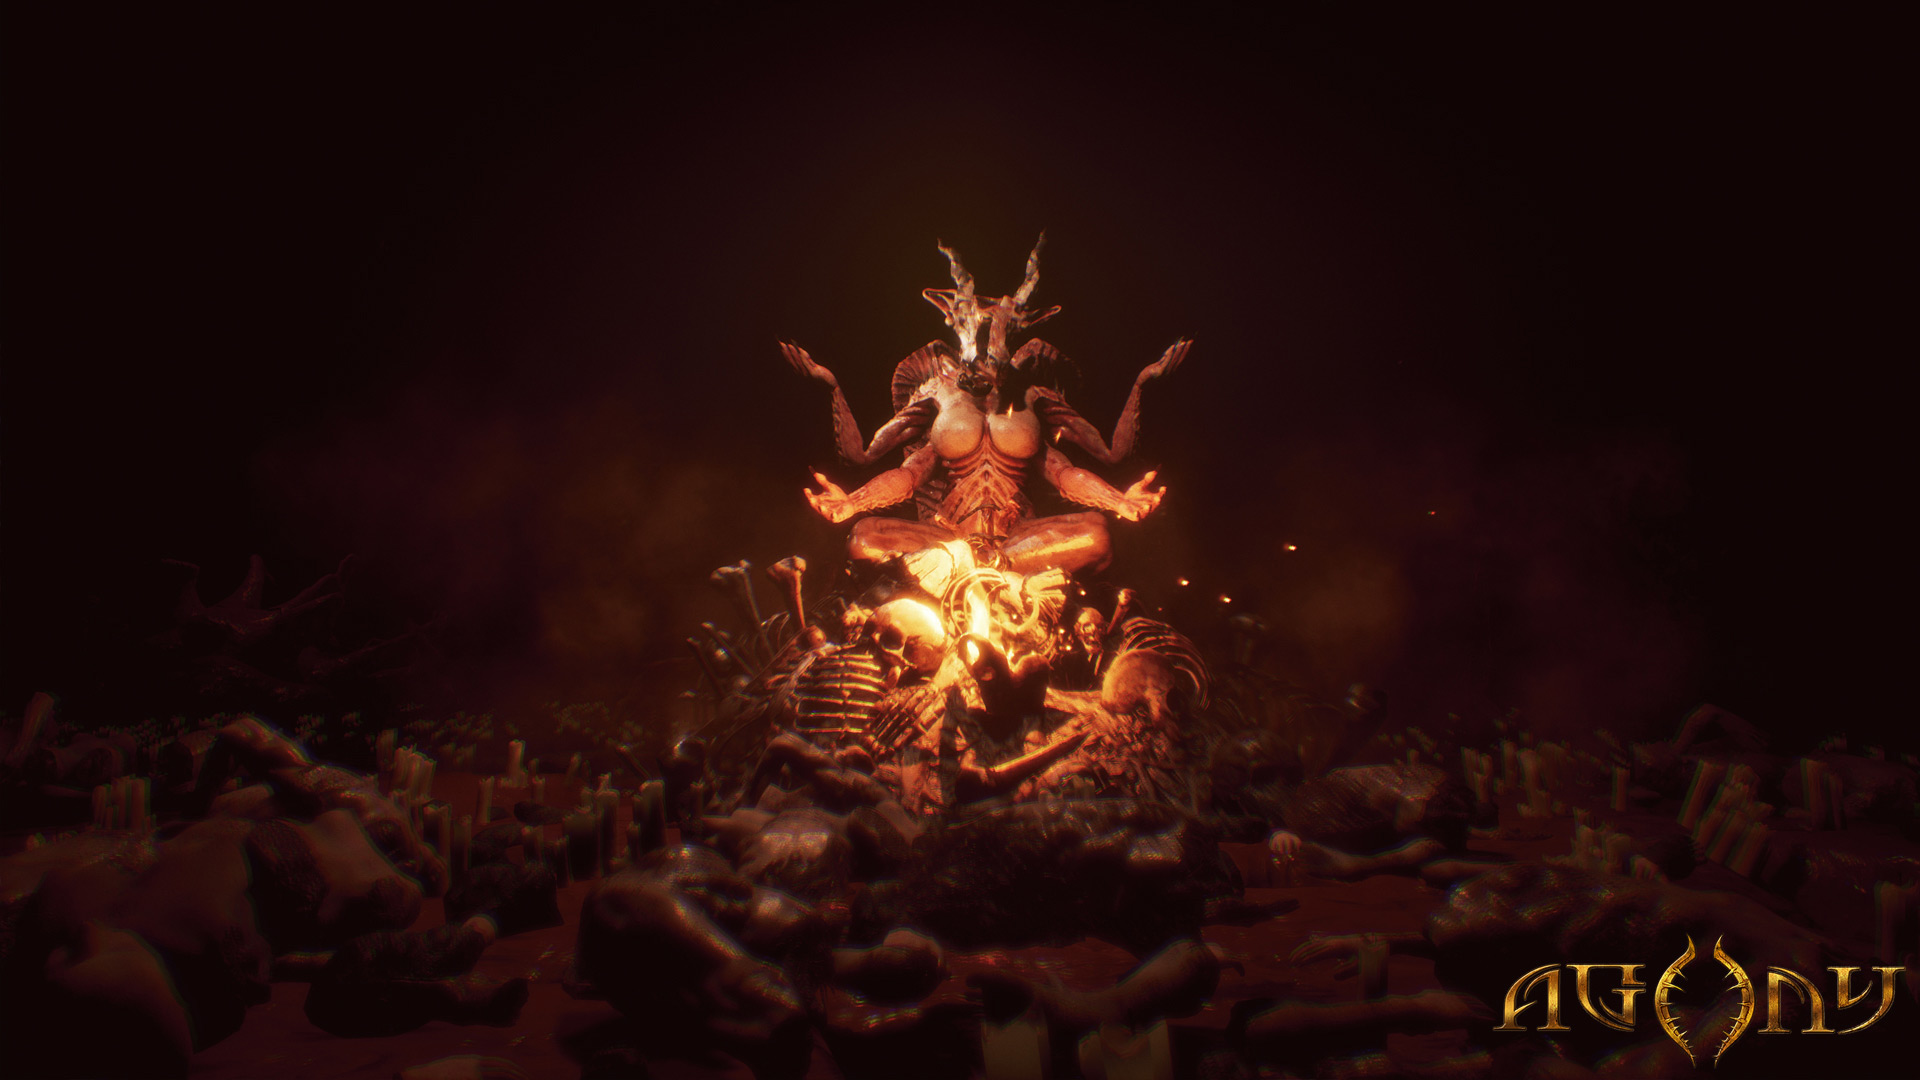 Survival horror Agony shows off demonic powers in new gameplay